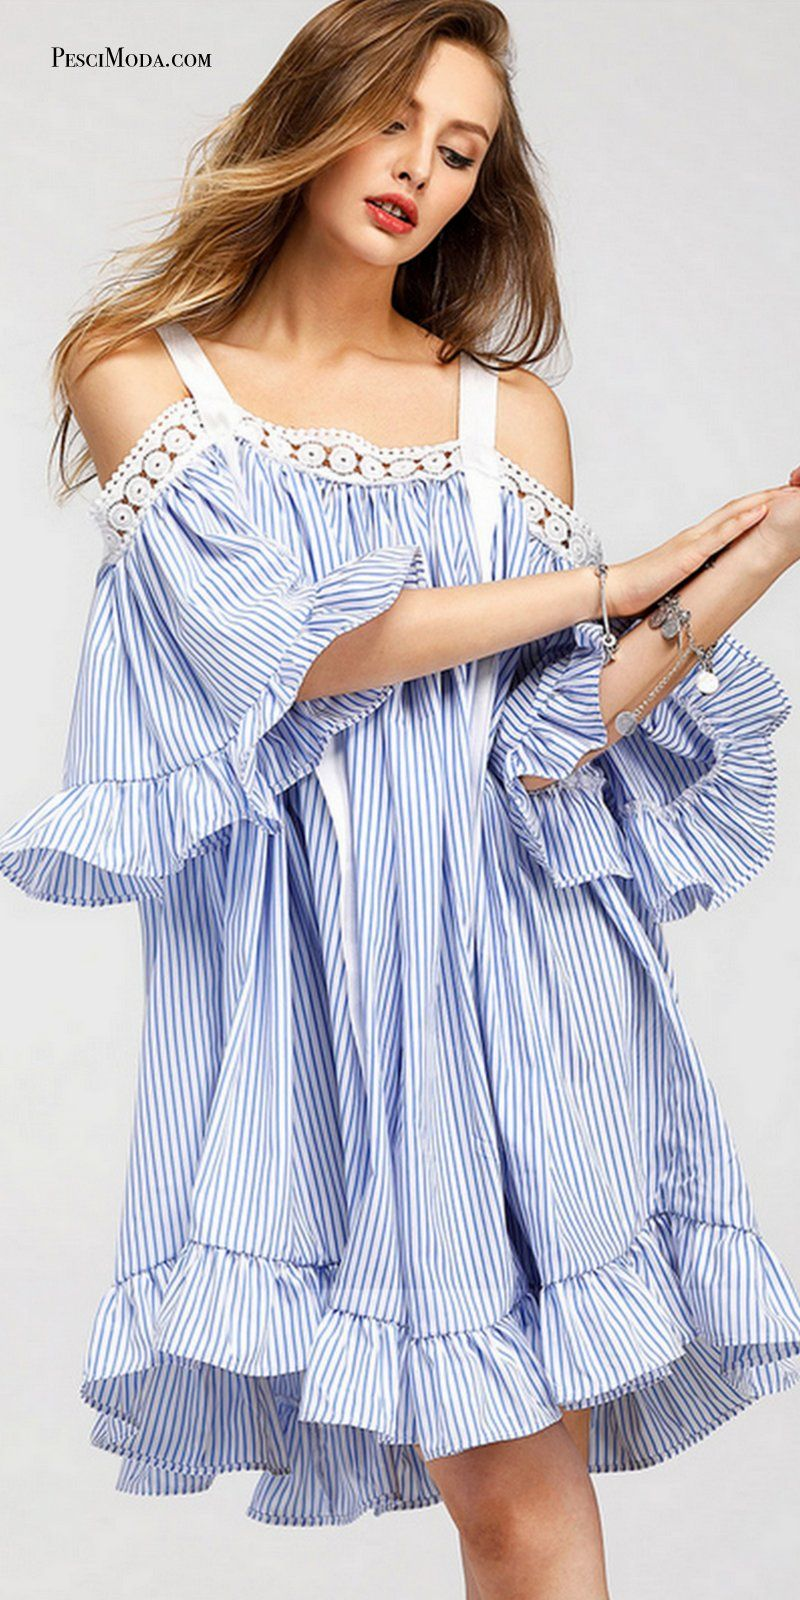 1bc0b59d697b WHITE BLUE STRIPED Short Dress  FreeShipping Get Your Summer Style Casual  Dresses at 50%Off at PesciModa.com  stripeddress  MiniDress  2017Fashion   Dresses ...